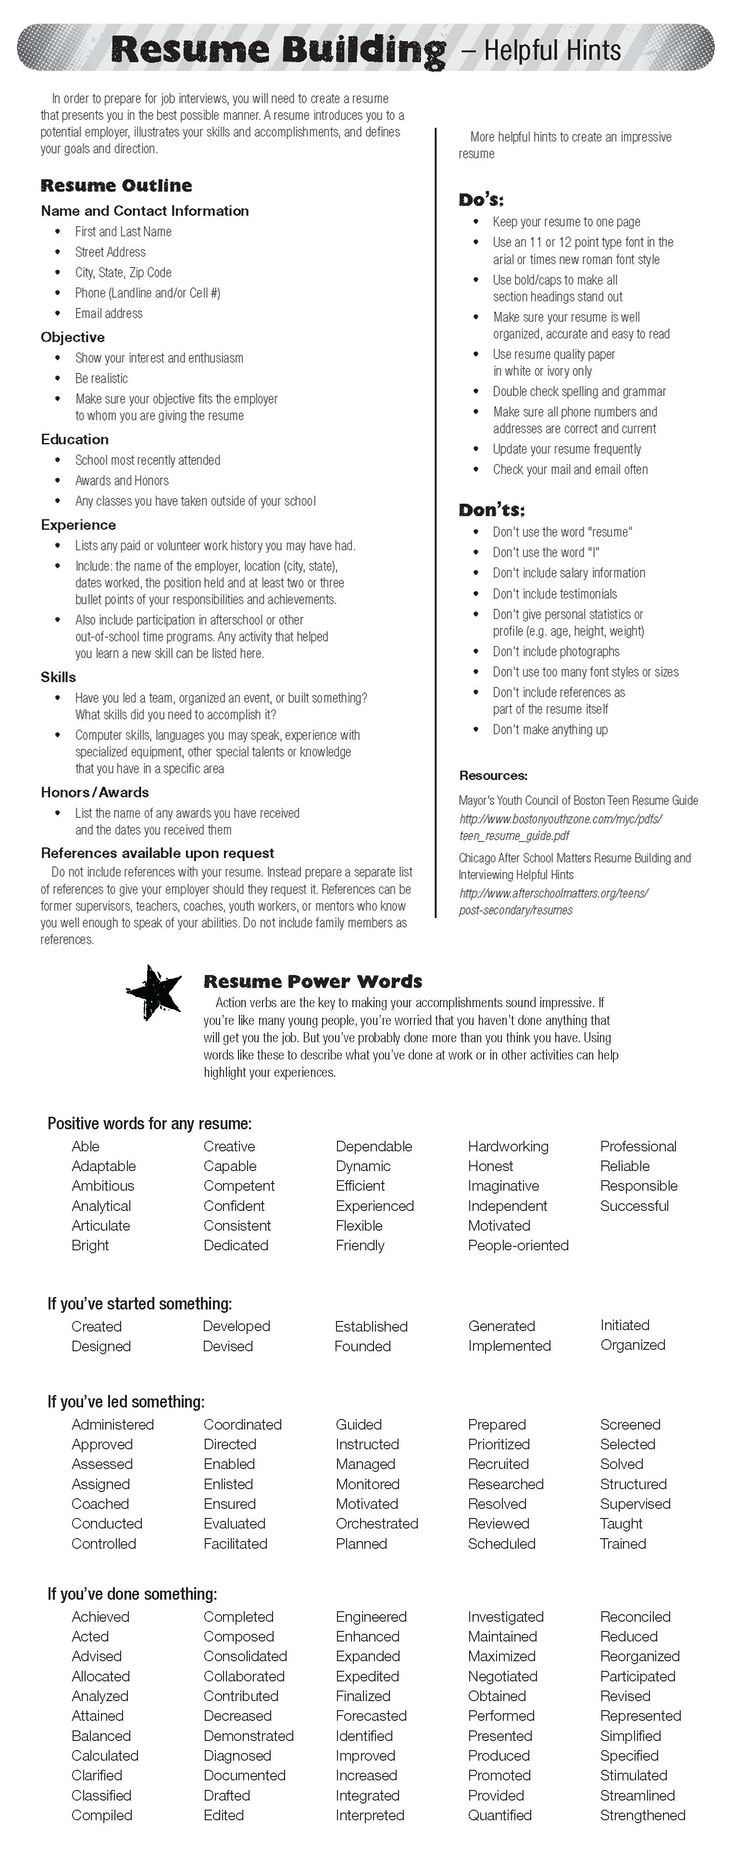 Picnictoimpeachus  Pretty  Ideas About Resume On Pinterest  Cv Format Resume Cv And  With Exquisite  Ideas About Resume On Pinterest  Cv Format Resume Cv And Resume Templates With Nice Paralegal Resumes Also Senior Project Manager Resume In Addition Resume Summary Examples Entry Level And How To Update Your Resume As Well As Education In Resume Additionally Personal Training Resume From Pinterestcom With Picnictoimpeachus  Exquisite  Ideas About Resume On Pinterest  Cv Format Resume Cv And  With Nice  Ideas About Resume On Pinterest  Cv Format Resume Cv And Resume Templates And Pretty Paralegal Resumes Also Senior Project Manager Resume In Addition Resume Summary Examples Entry Level From Pinterestcom